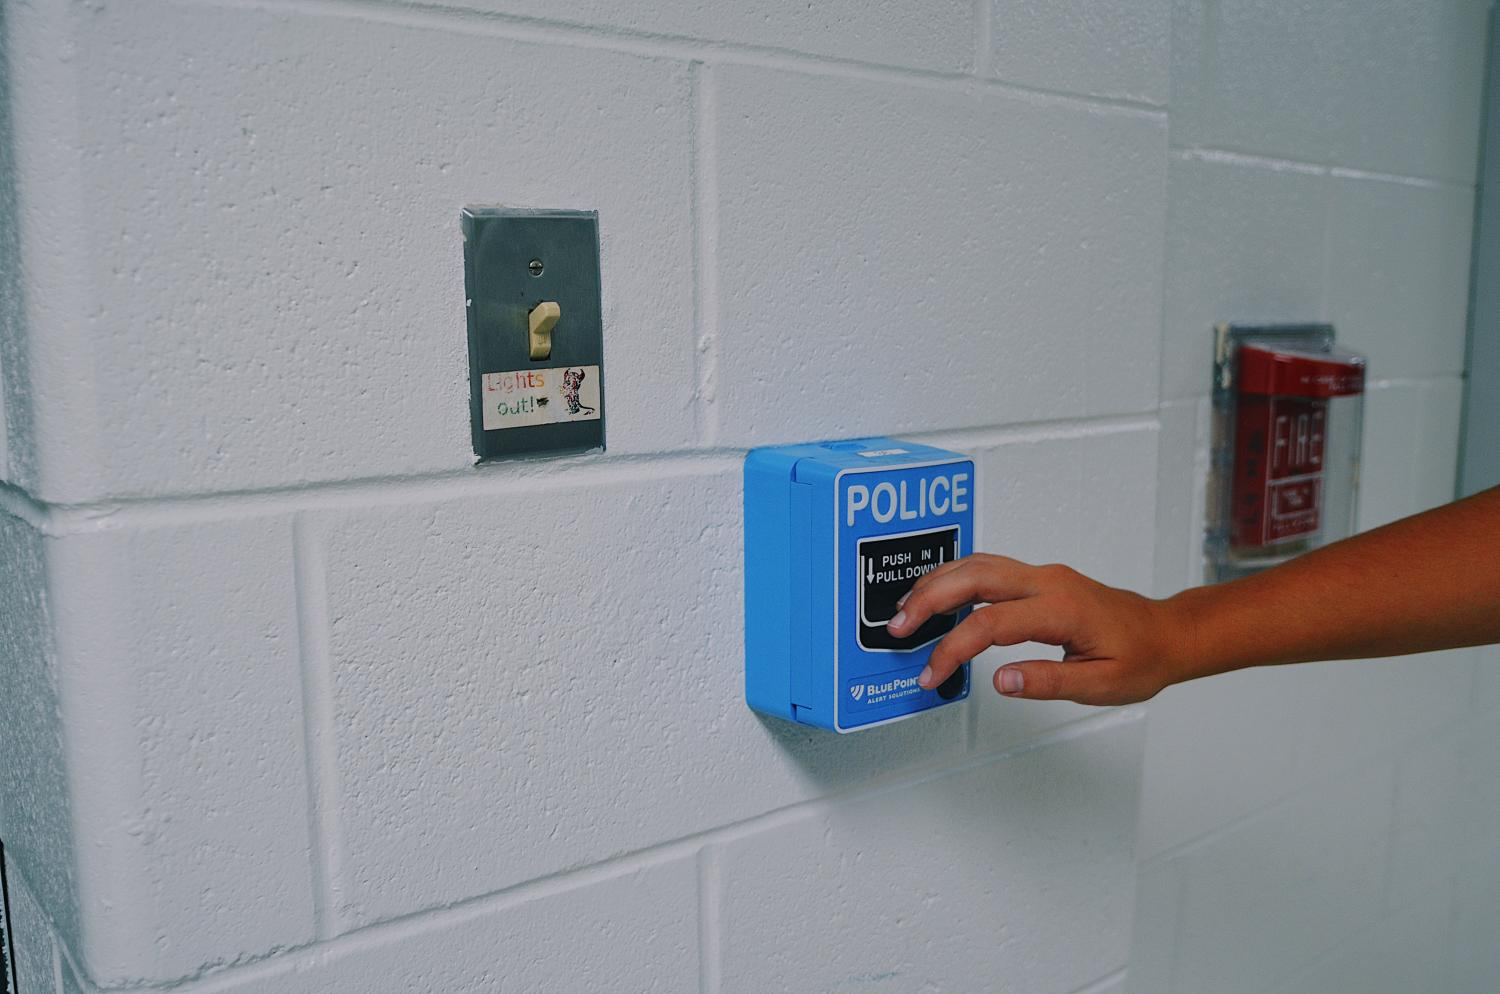 Students are now able to easily pull a lever for the police to arrive at school.